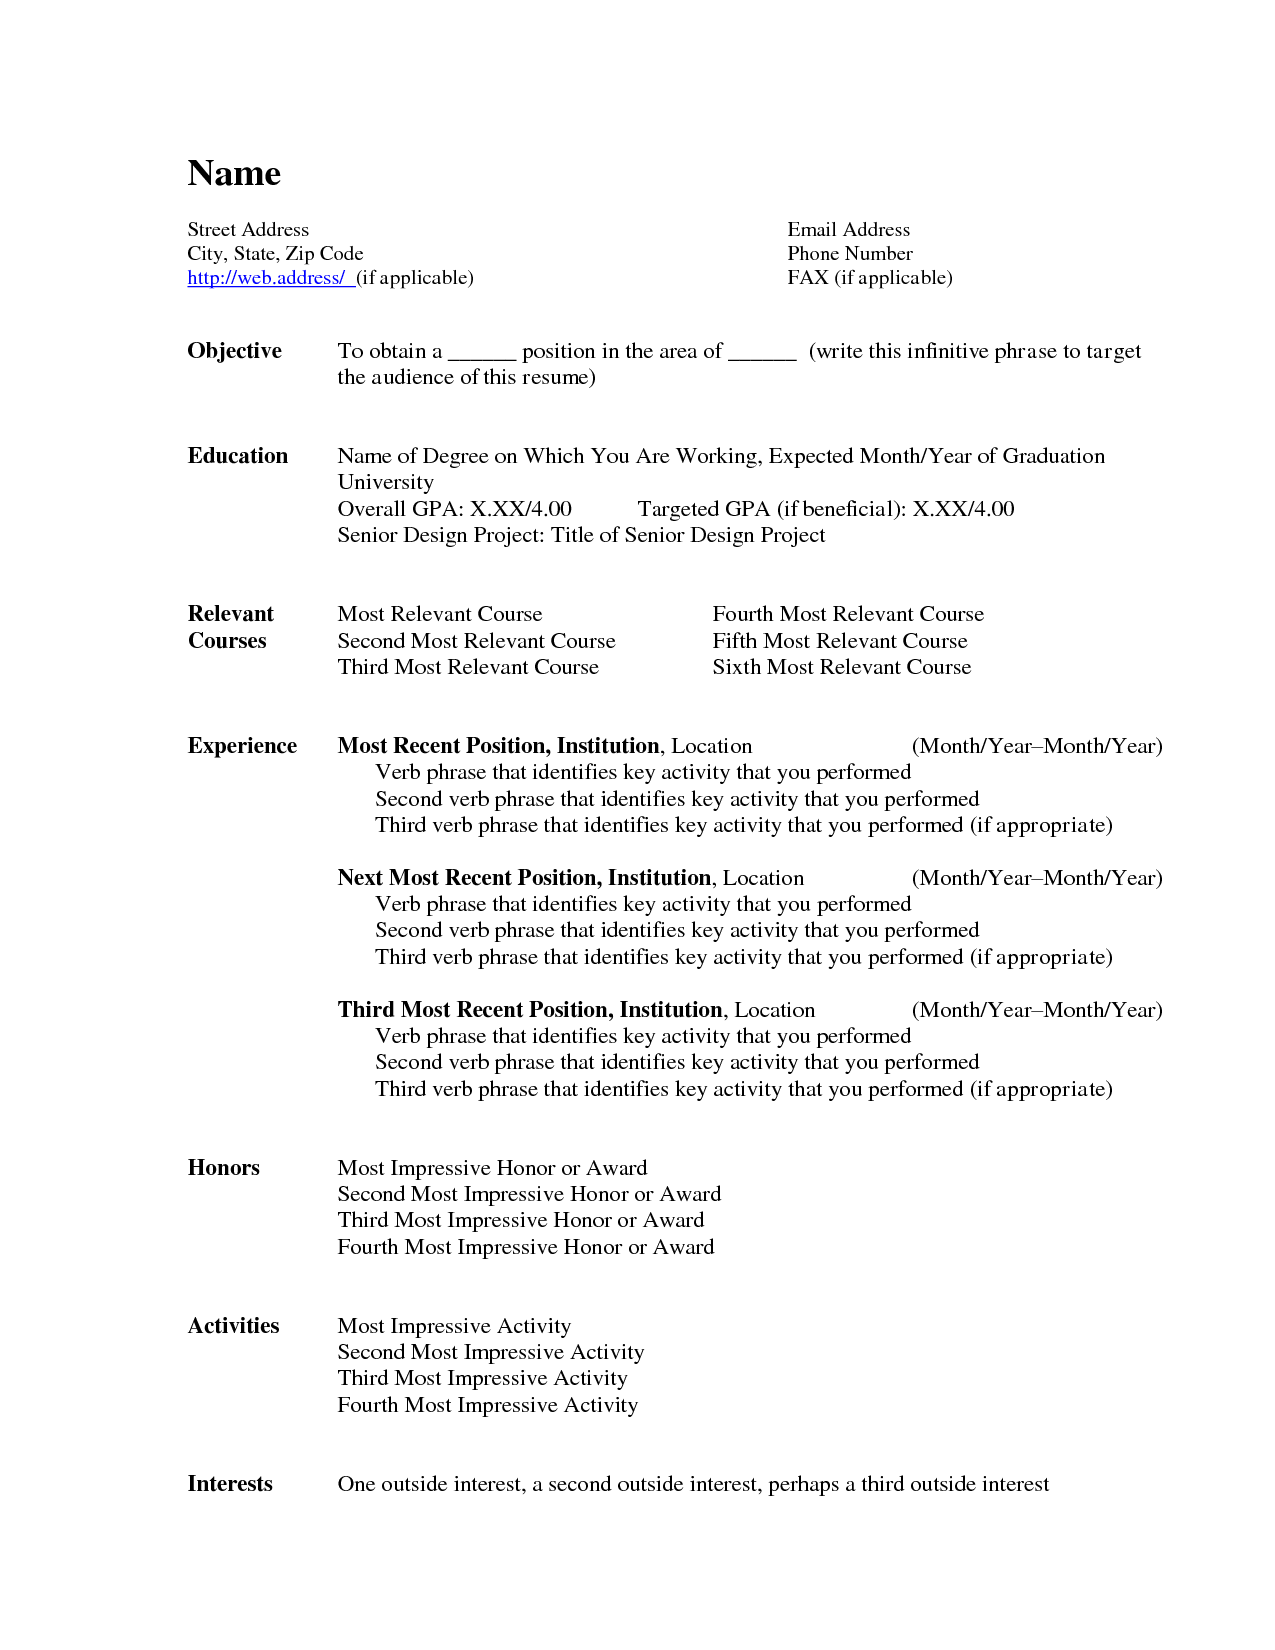 resume word sample tableau architecture 98bc87a66d248cc28f2e9ec2c224937e resume word samplehtml - Professional Resume Samples In Word Format